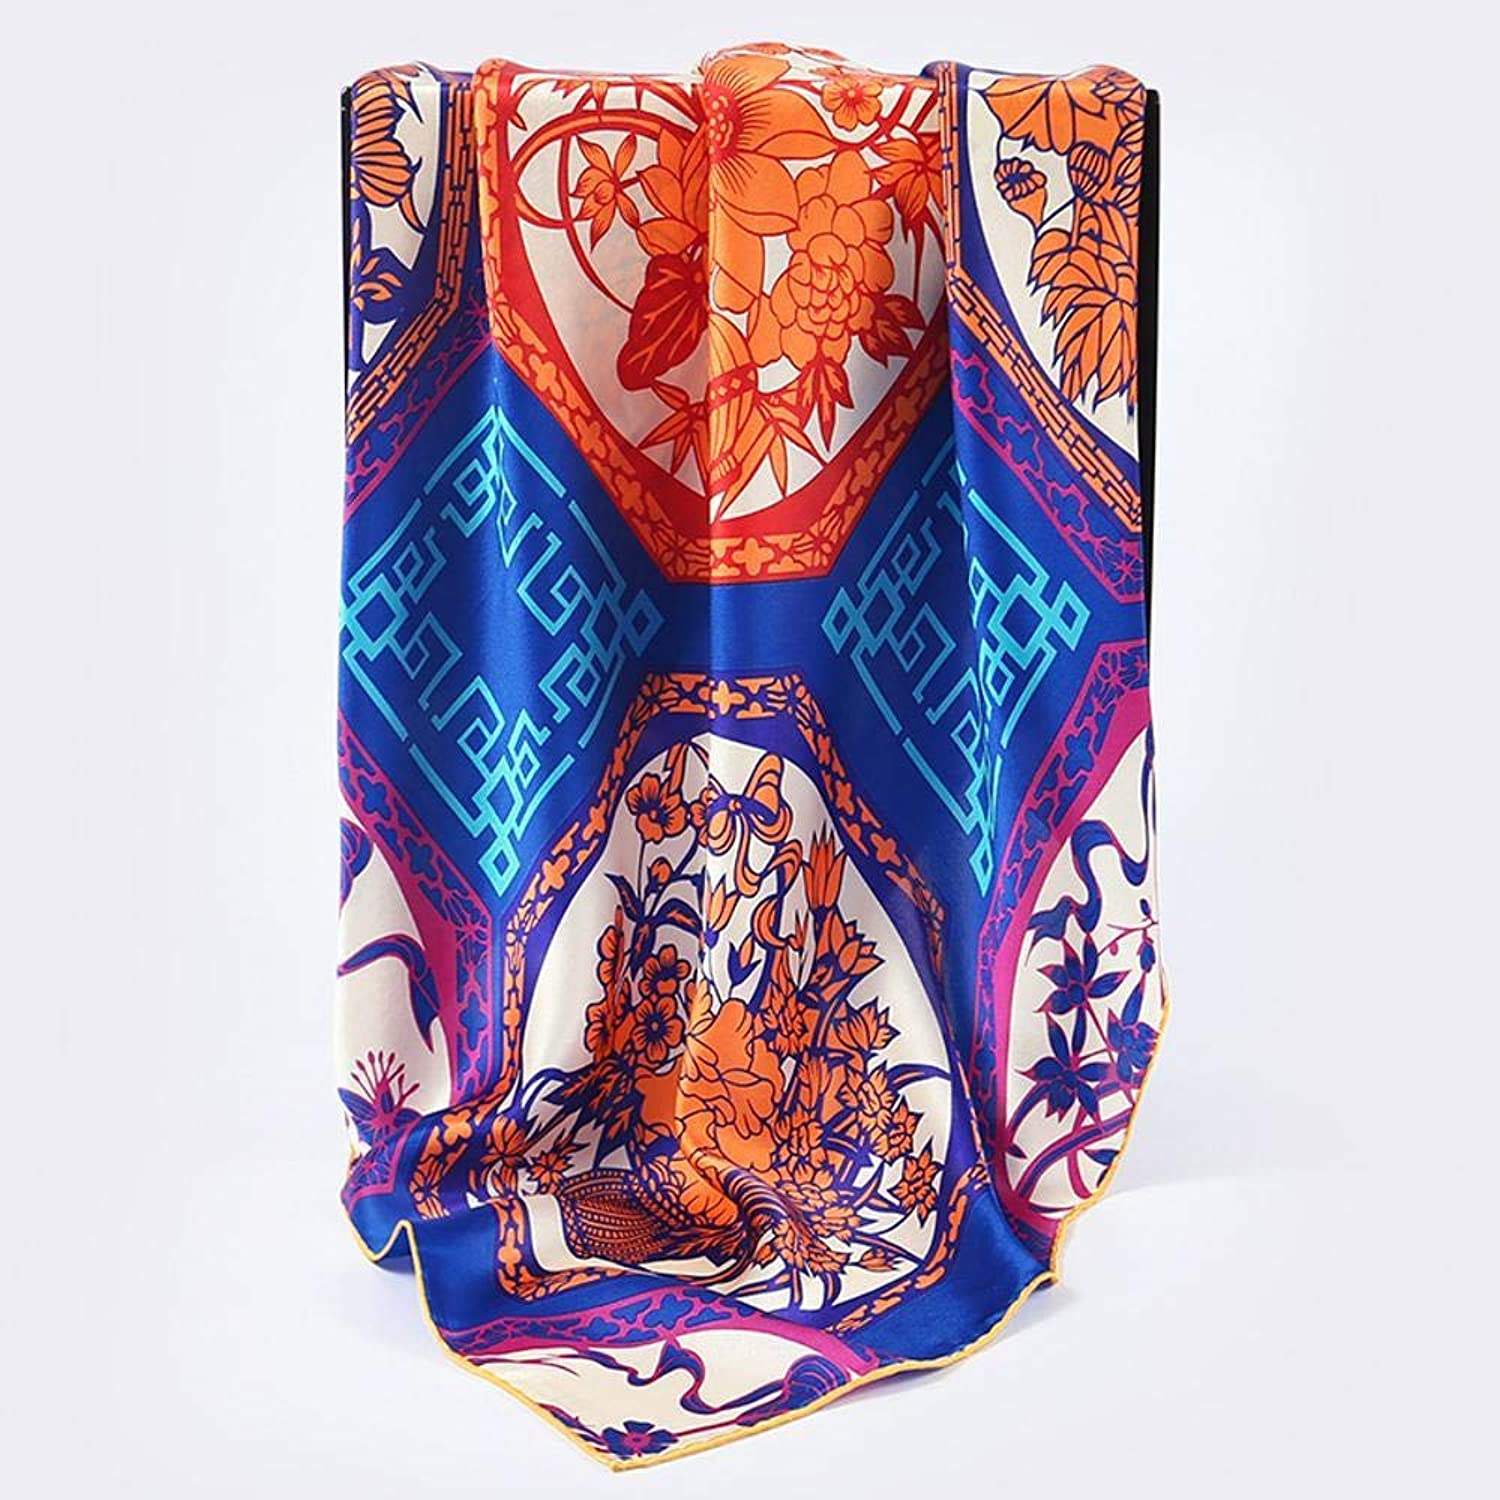 Weiwei Ladies Silk Shawl 100% Silk Satin Scarf Small Shawl Send Family Friend 90cm90cm